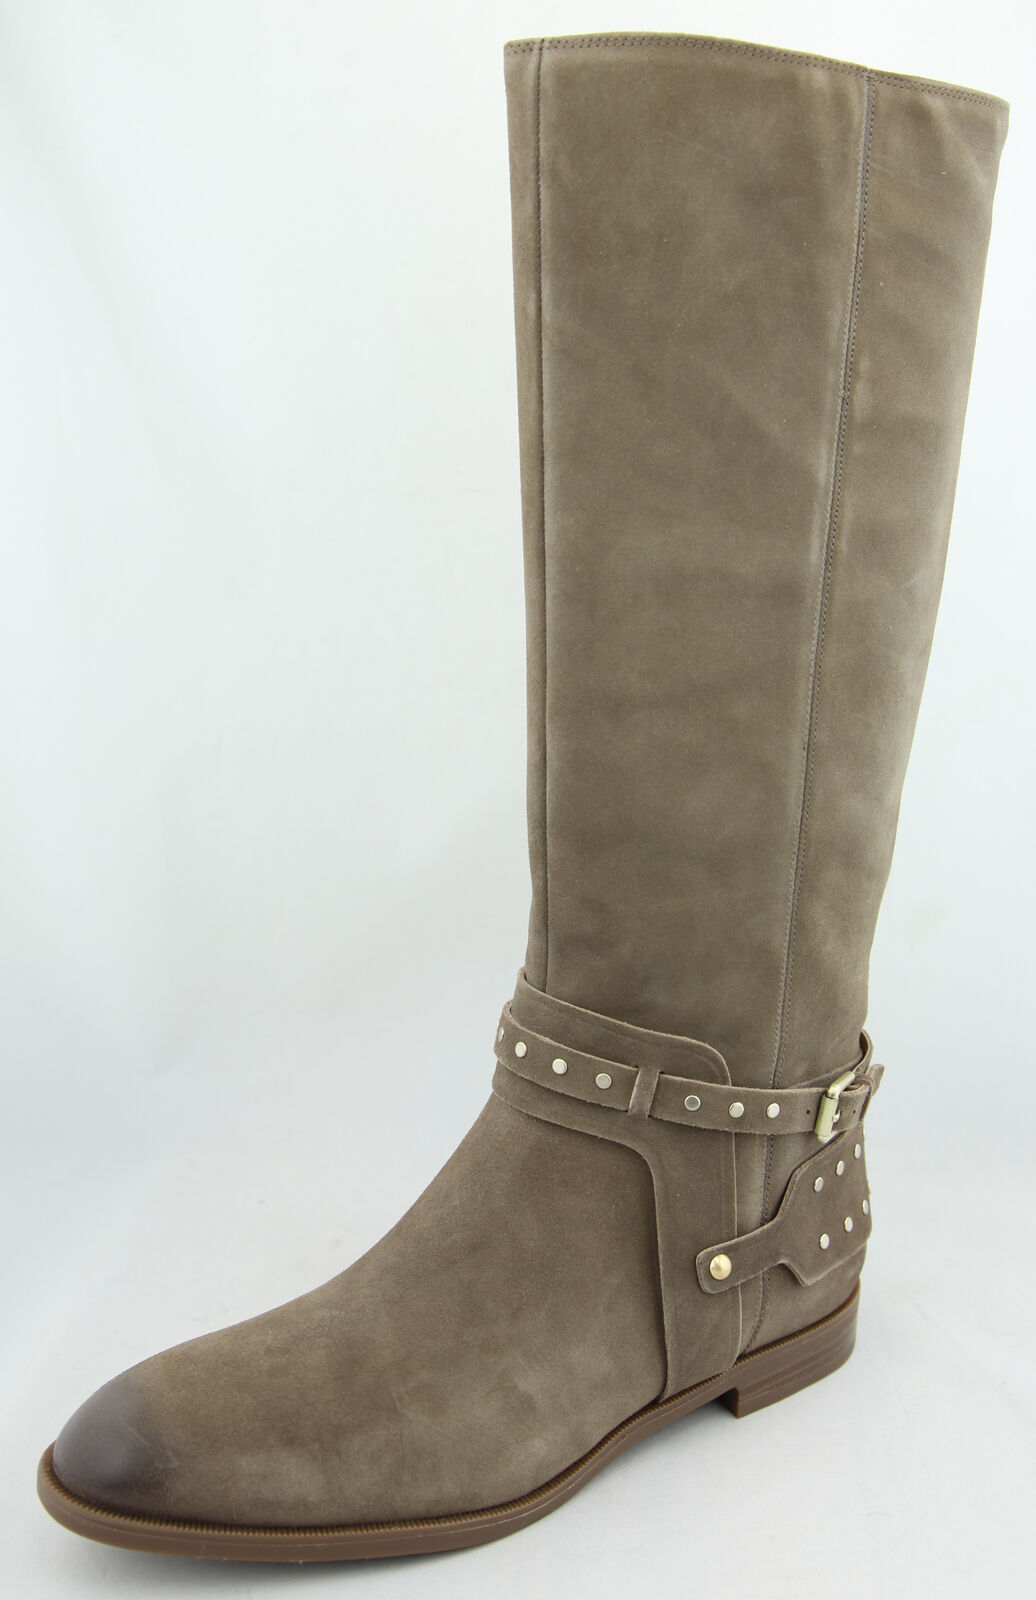 Nine West femme taupe Luciana cloutées Tall Riding démarrage Chaussures Ret  199 NEUF